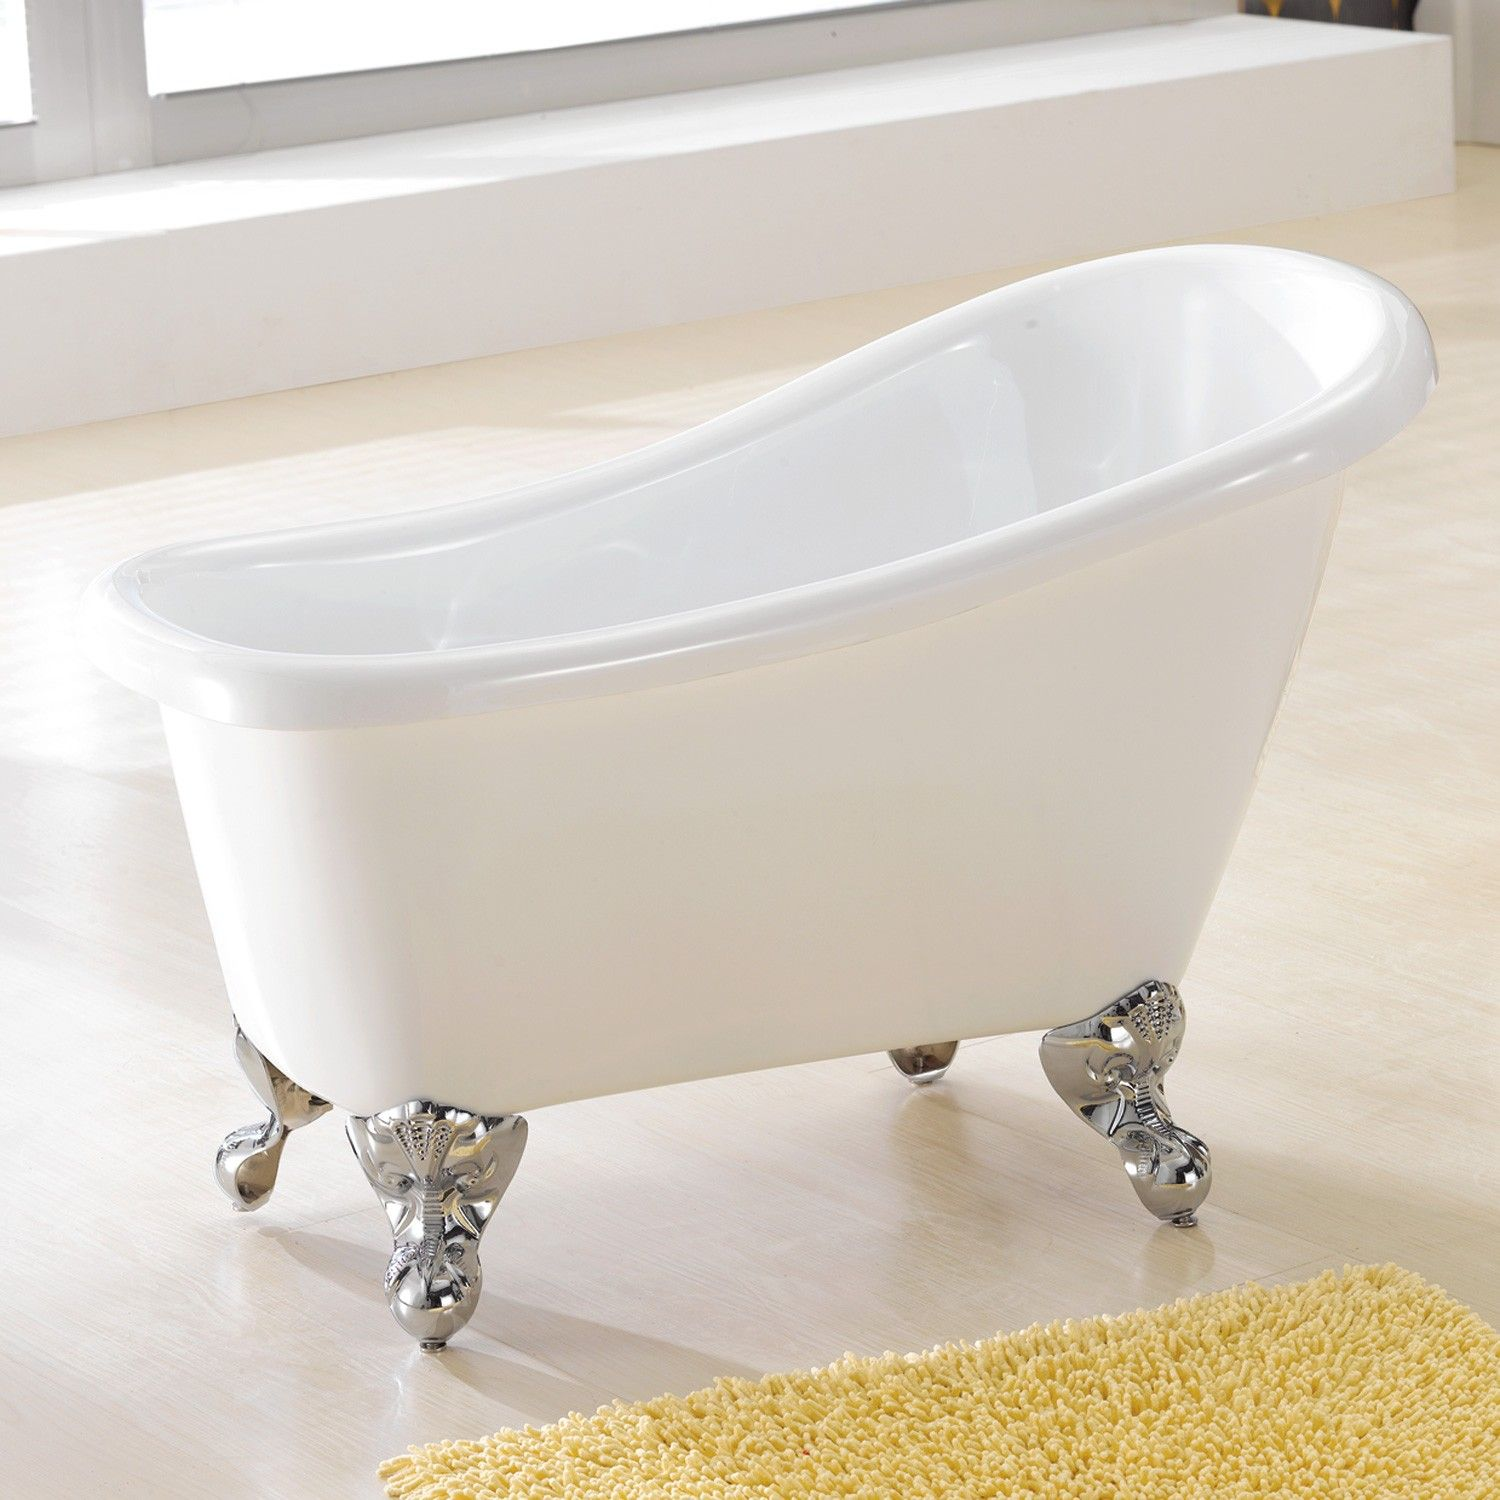 43 carter mini acrylic clawfoot tub bathtubs tubs and for Built in clawfoot tub